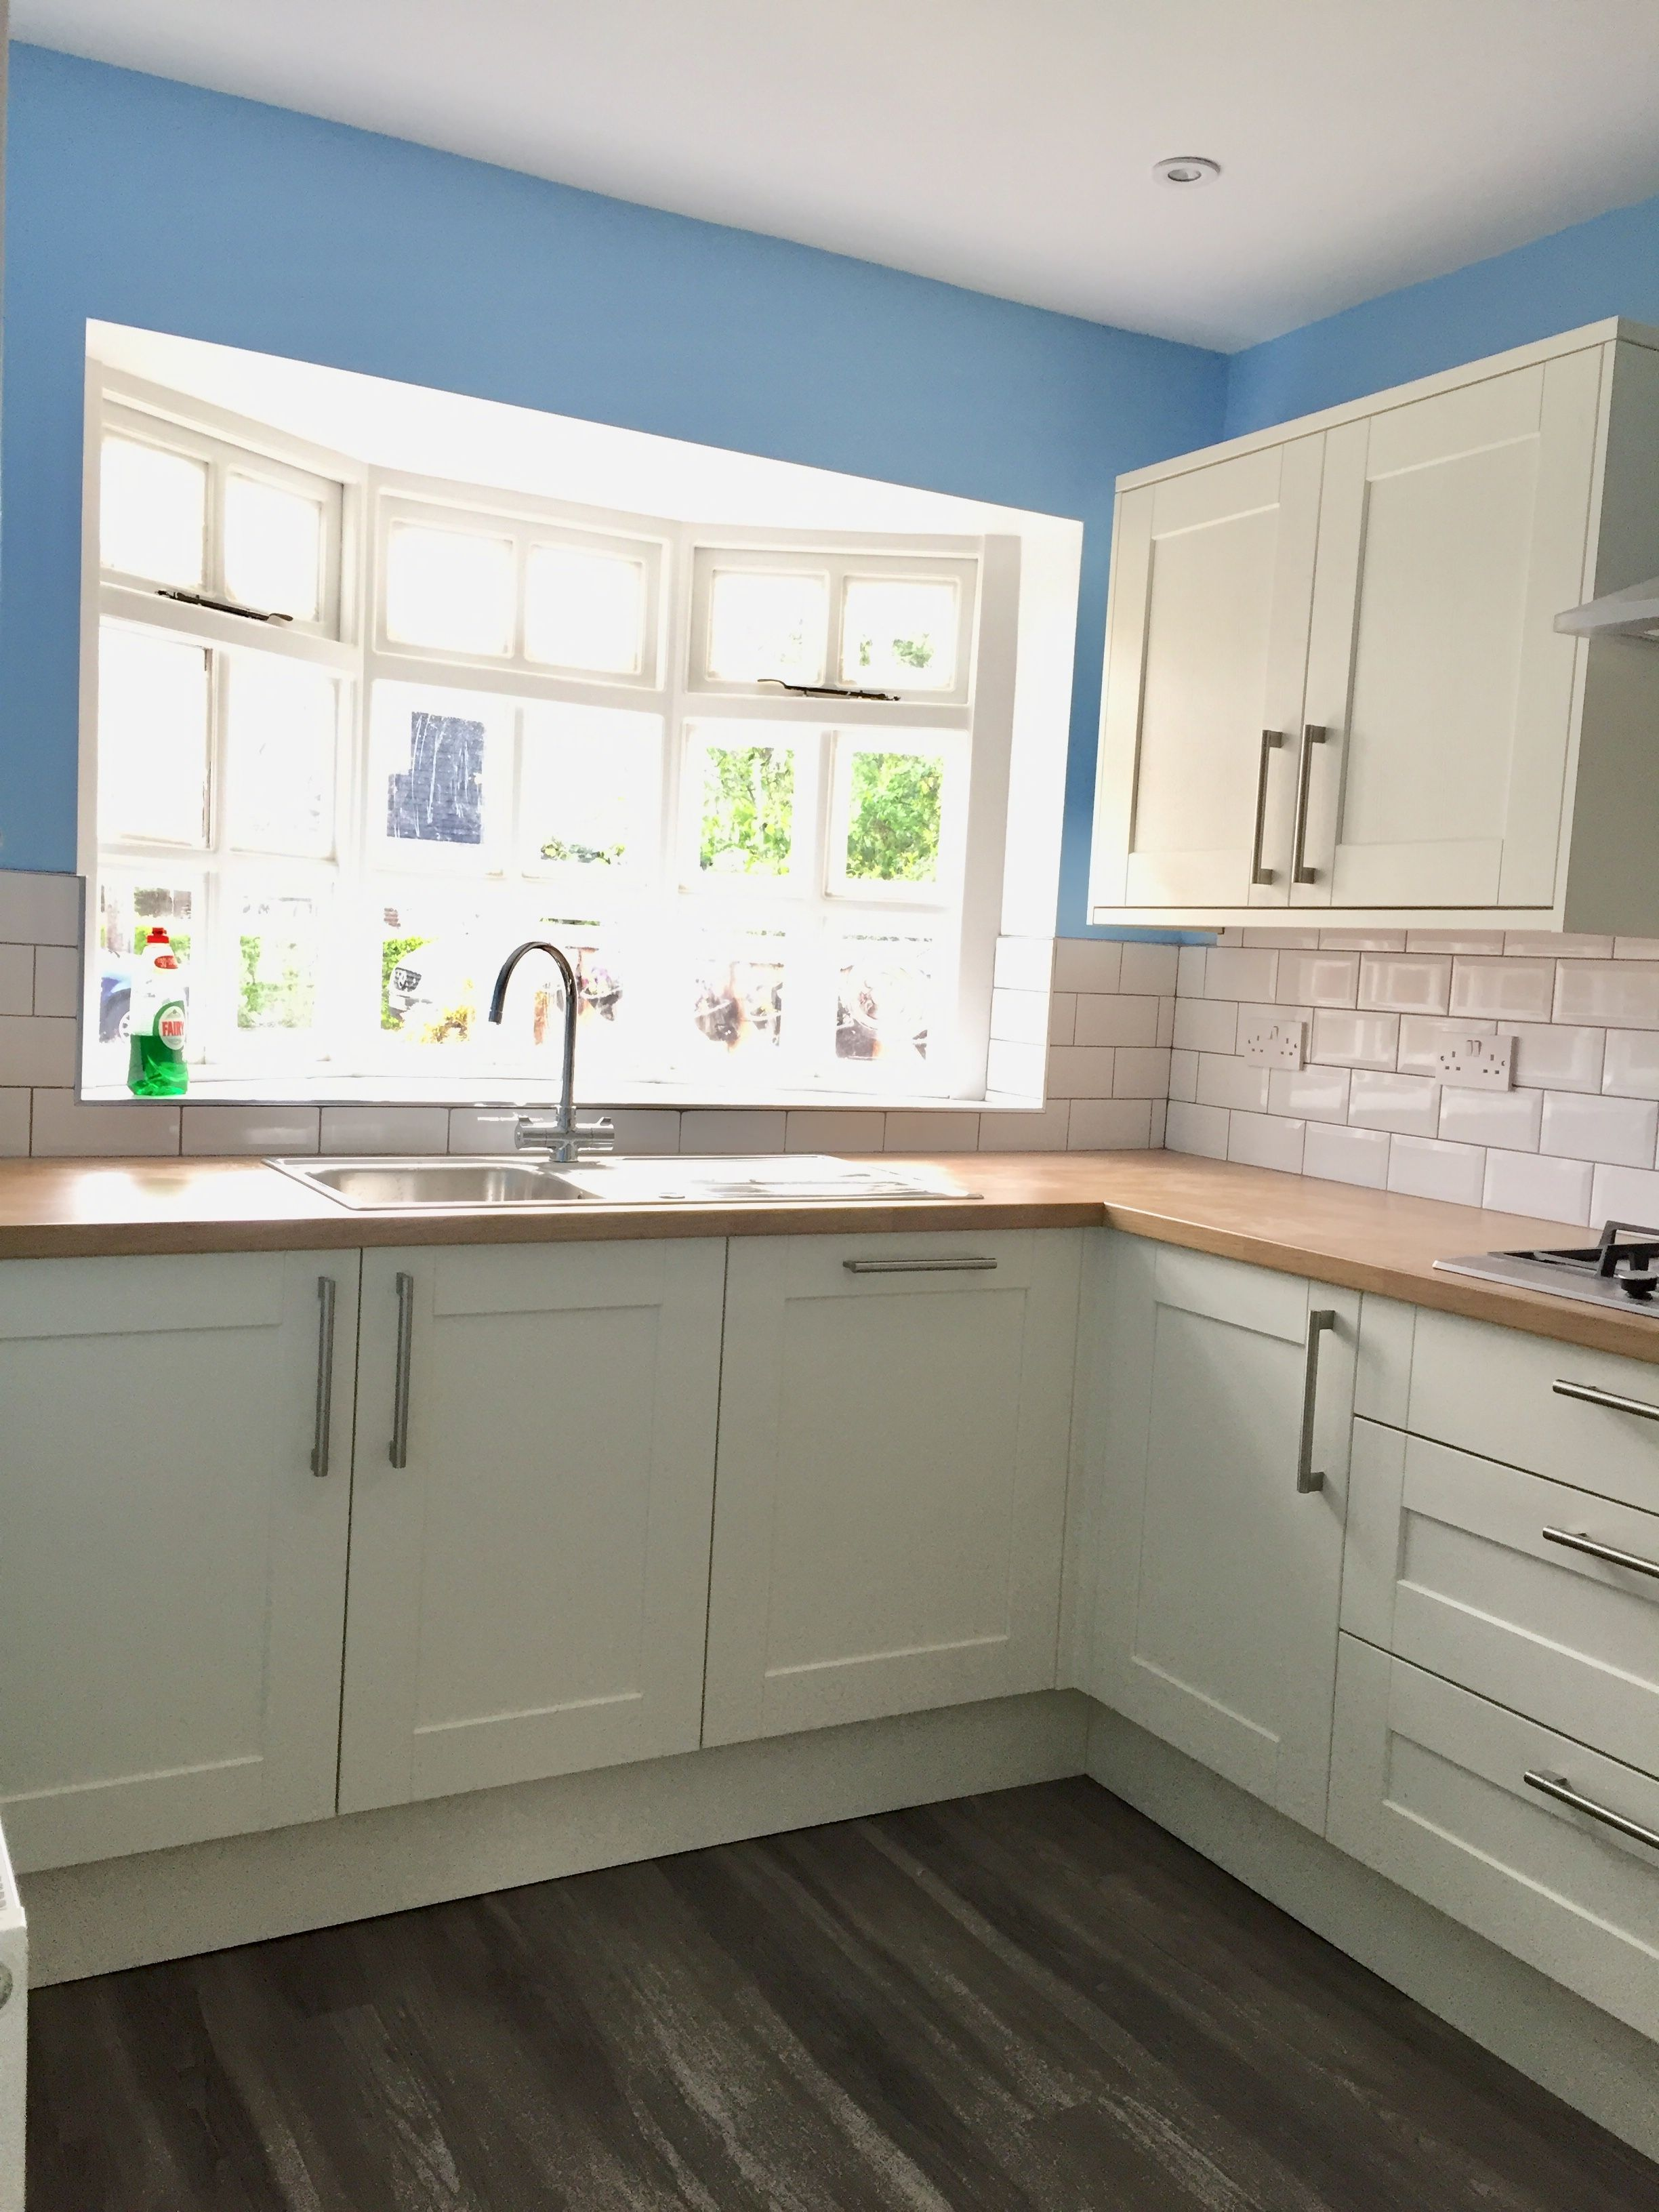 Expert Klein Mikrowelle Howdens Fairford Antique White With Oak Affect Worktop Kitchen